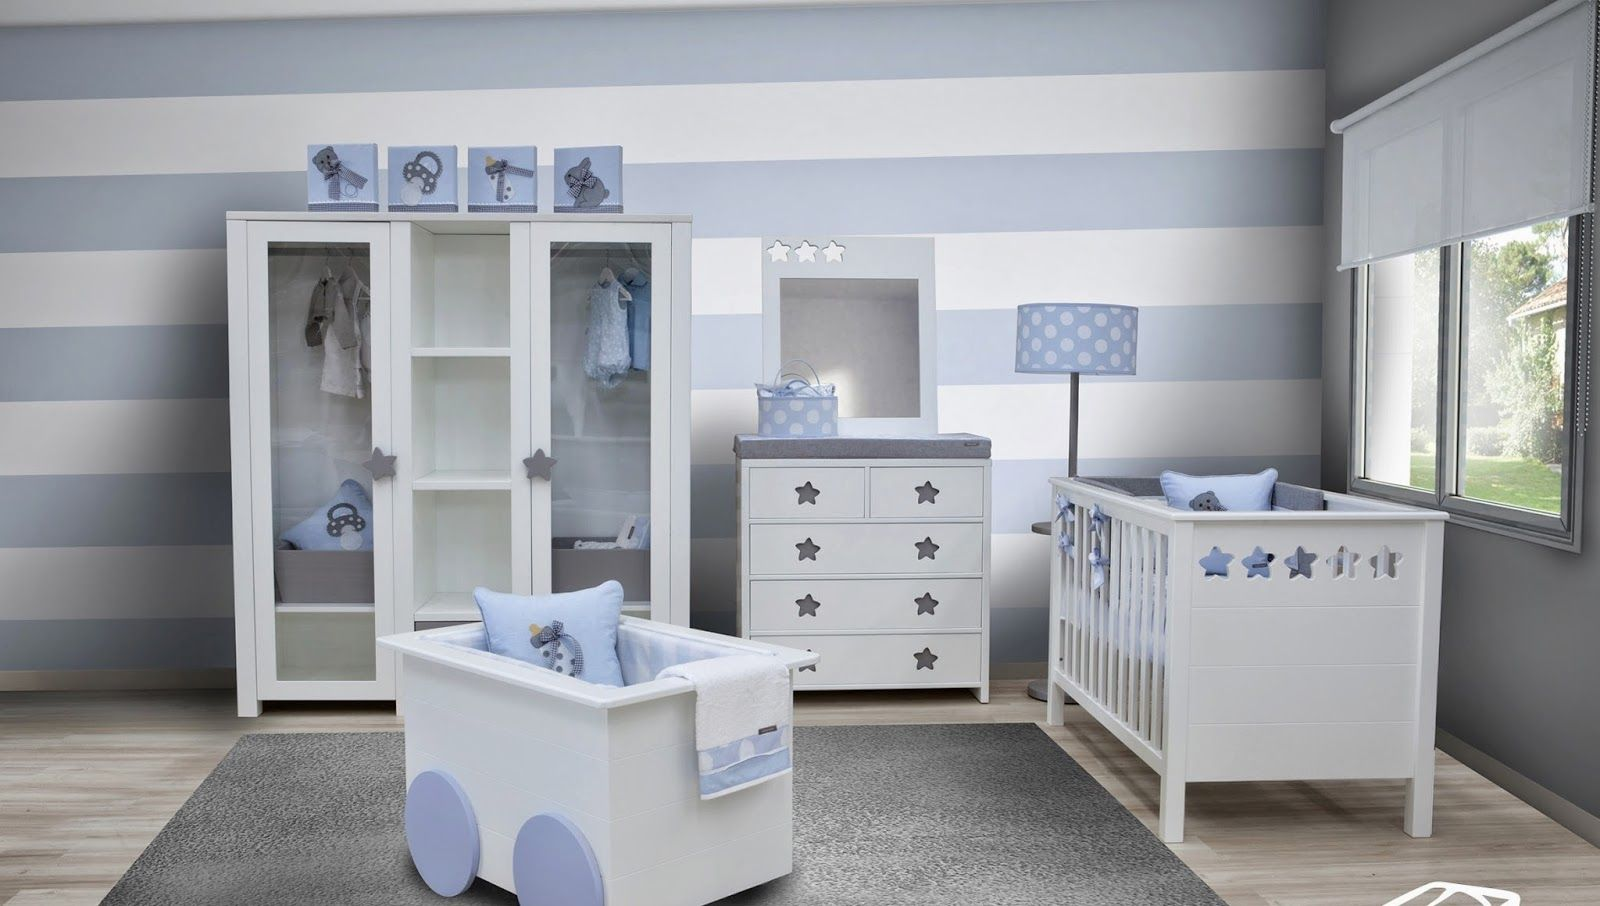 Bb the countrybaby blog ideas para decorar el dormitorio - Cuartos bebes recien nacidos ...